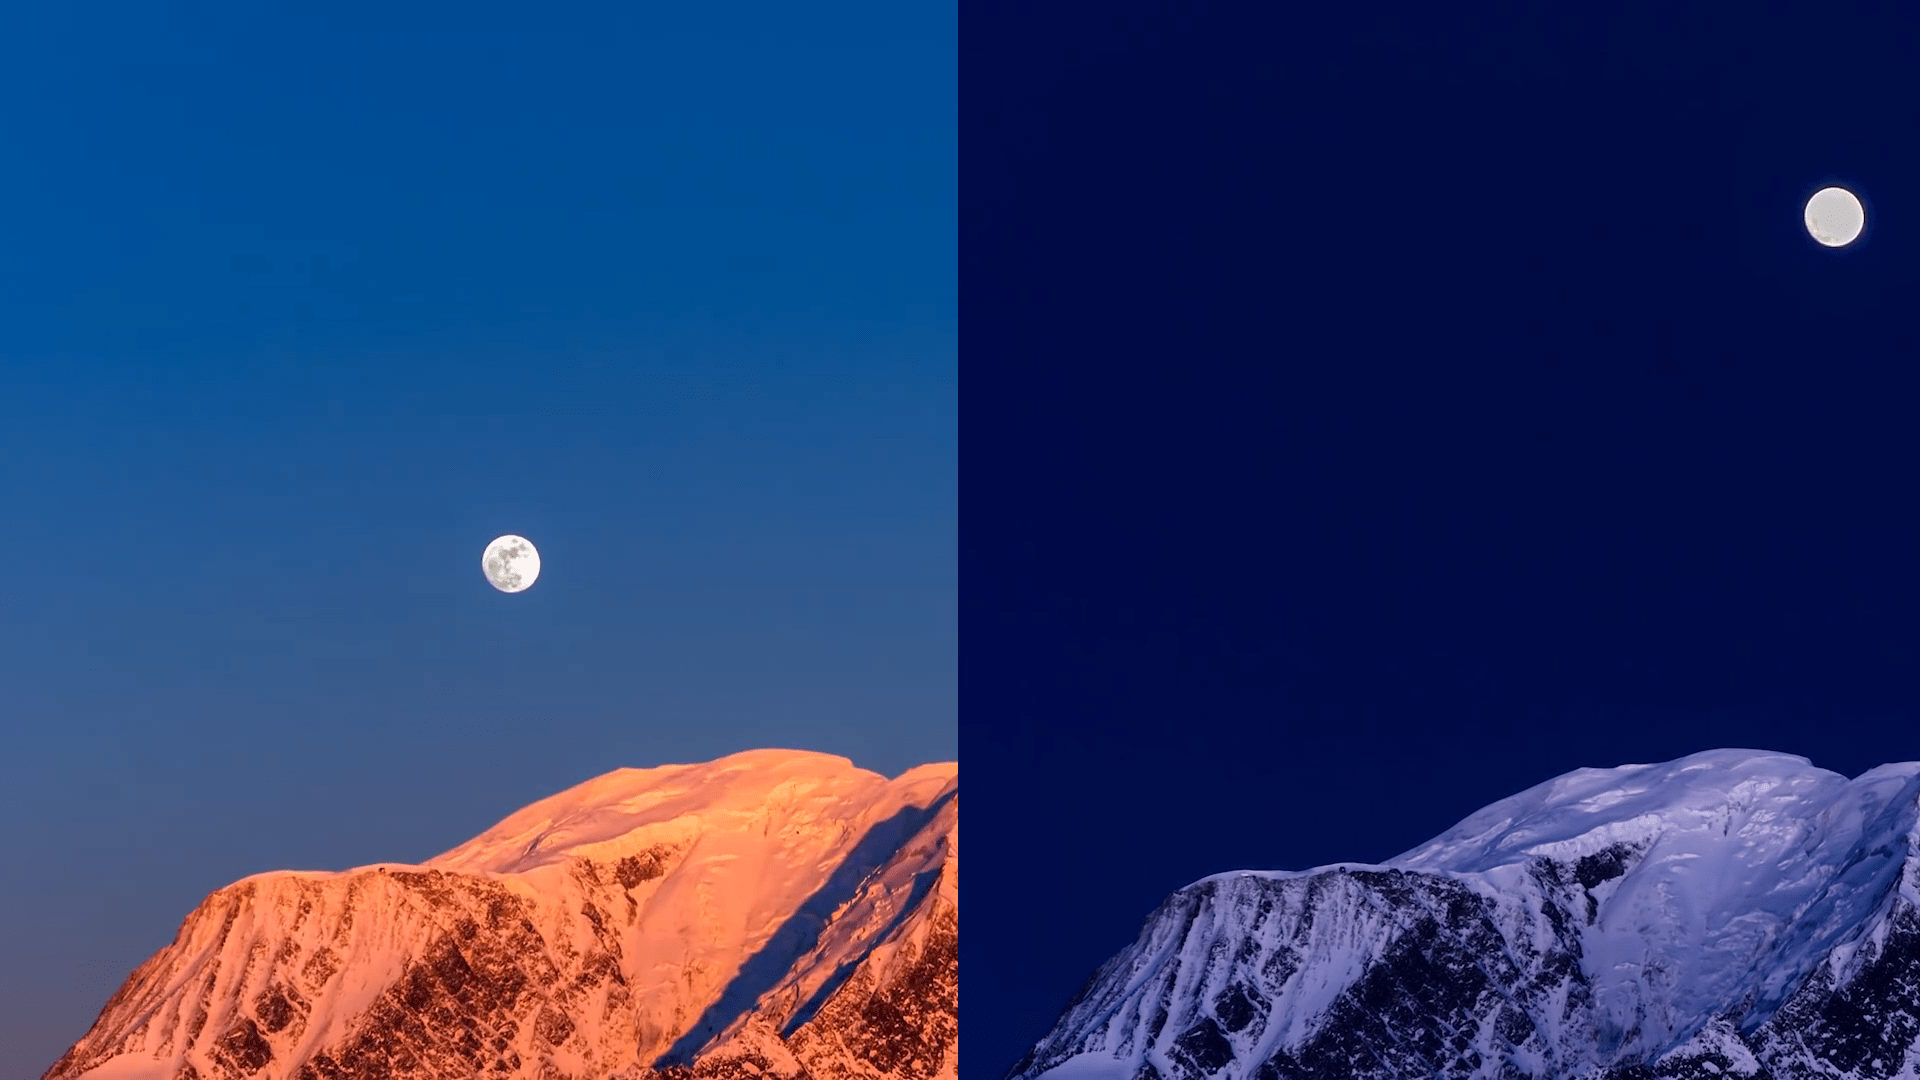 The Moon In The Day And Night Sky